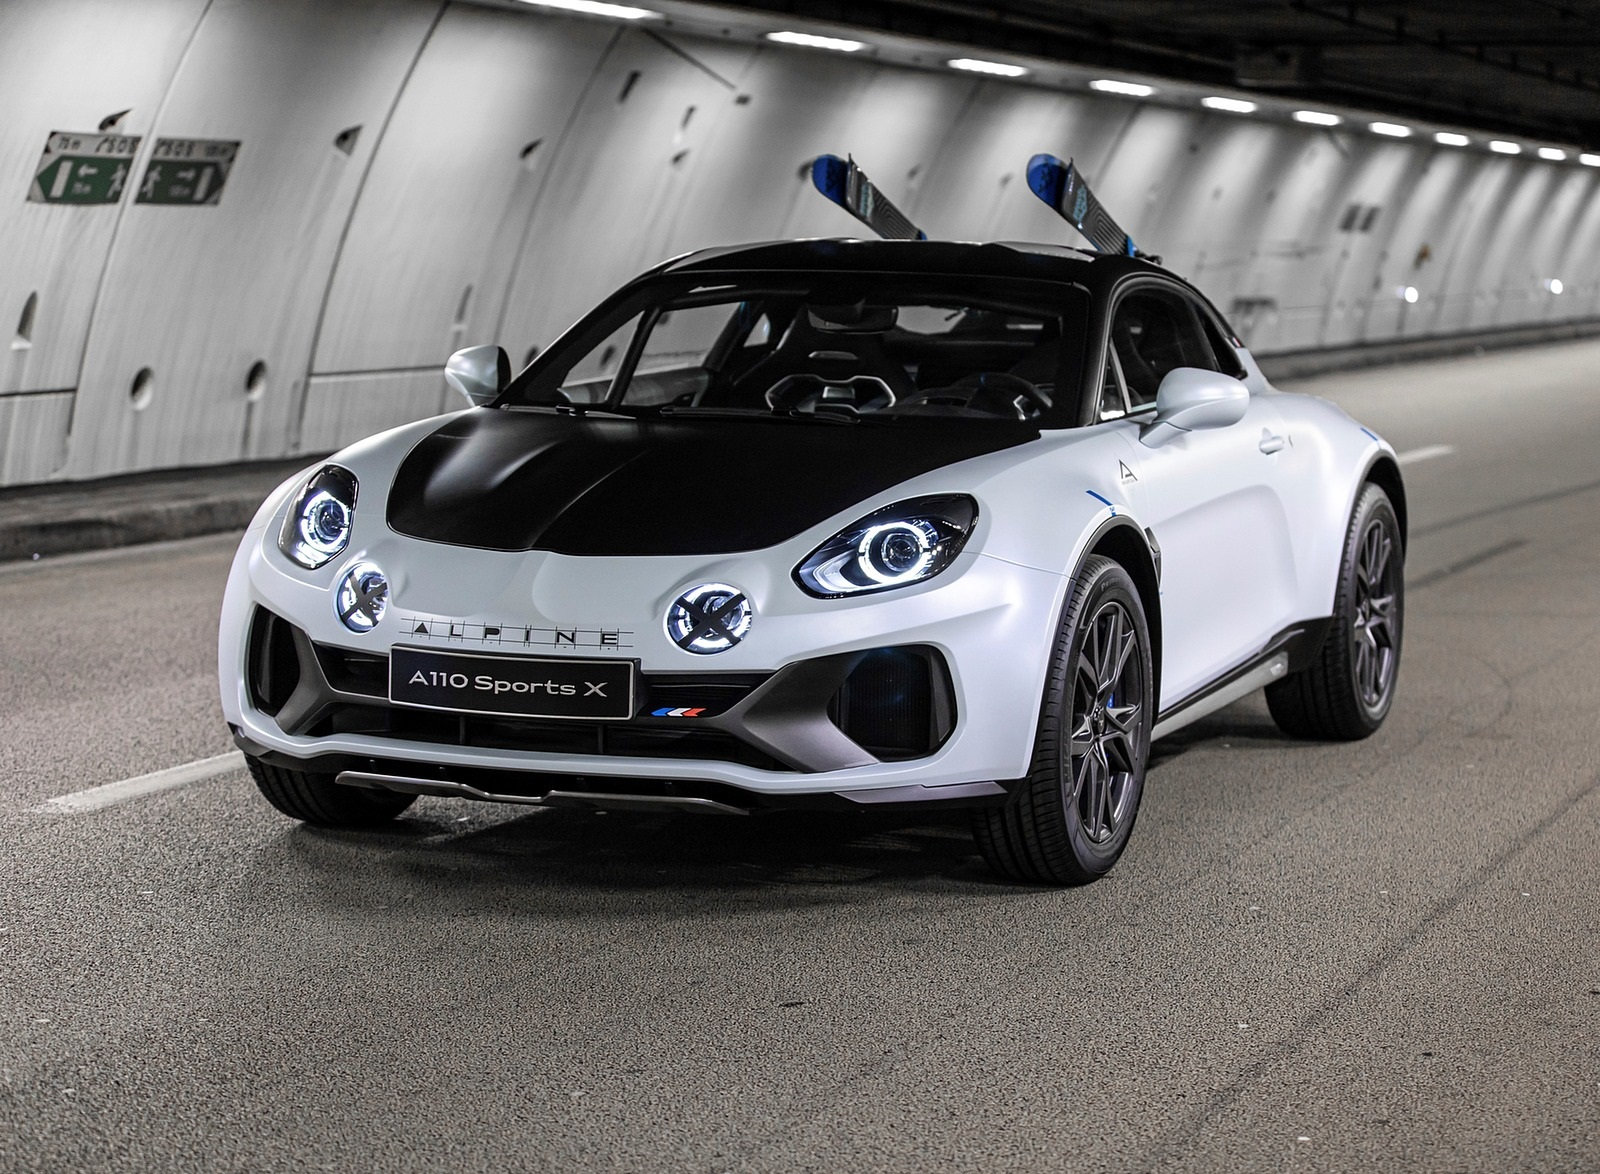 2020 Alpine A110 SportsX Concept Front Three-Quarter Wallpapers (5)